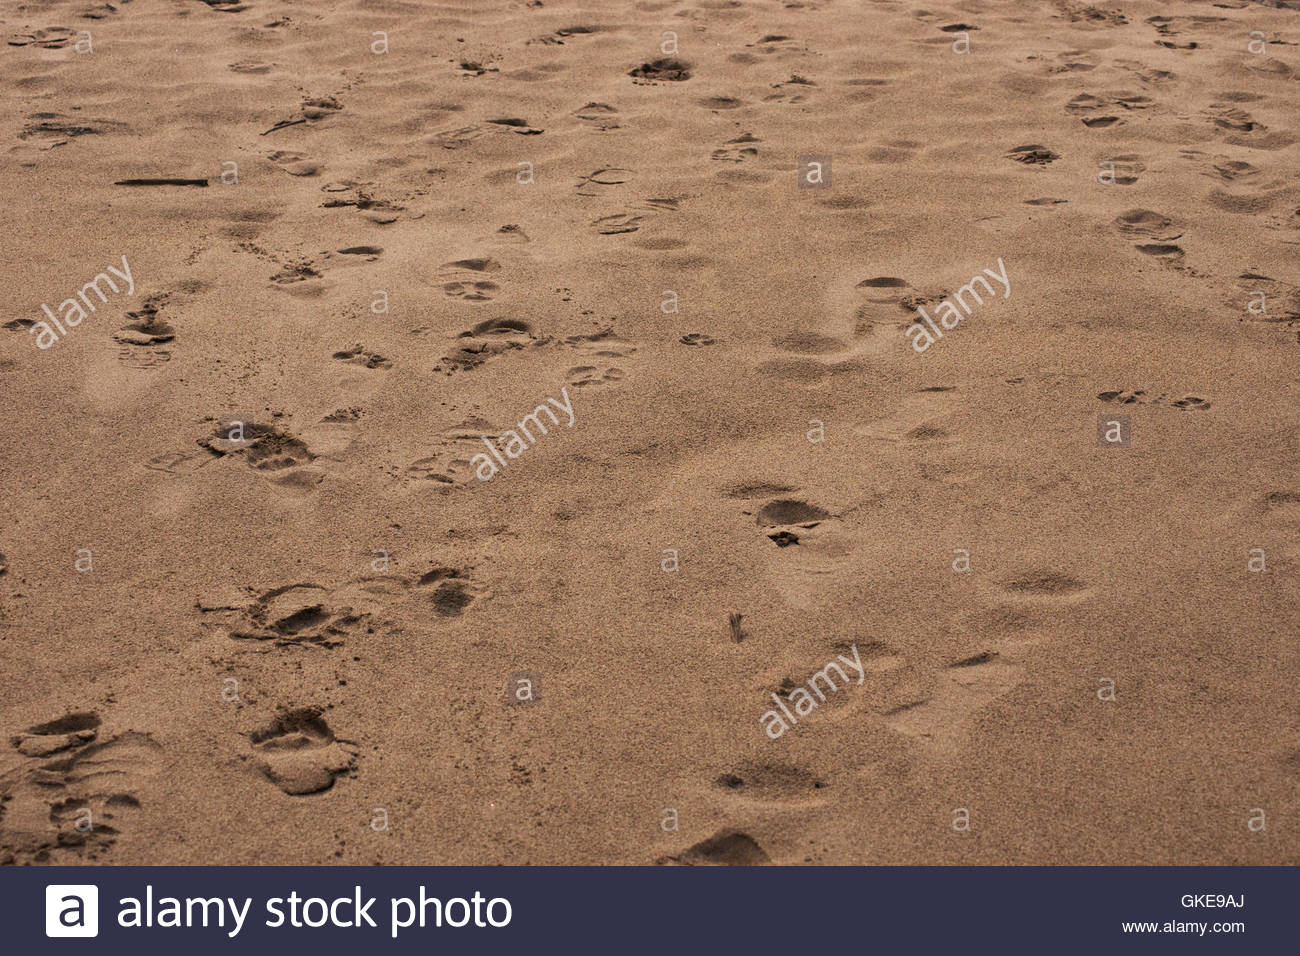 Trails, footprints and animal tracks on the Monkey Island's beach. Madre de Dios river sand, Puerto Maldonado, Peru. - Stock Image